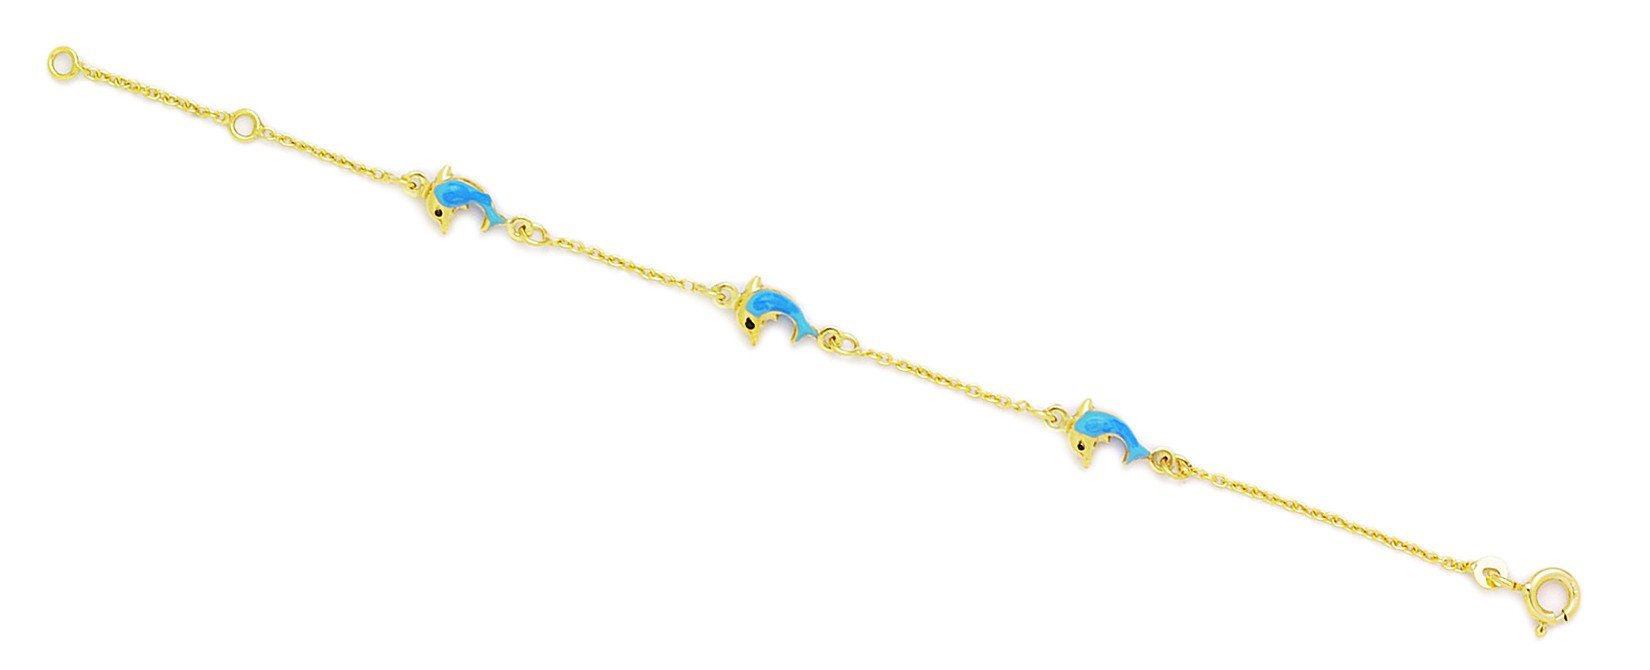 14k Yellow Gold 5.75 Inch Adjustable Three Blue Dolphins Enamel Baby Id Bracelet - Measures 6mm